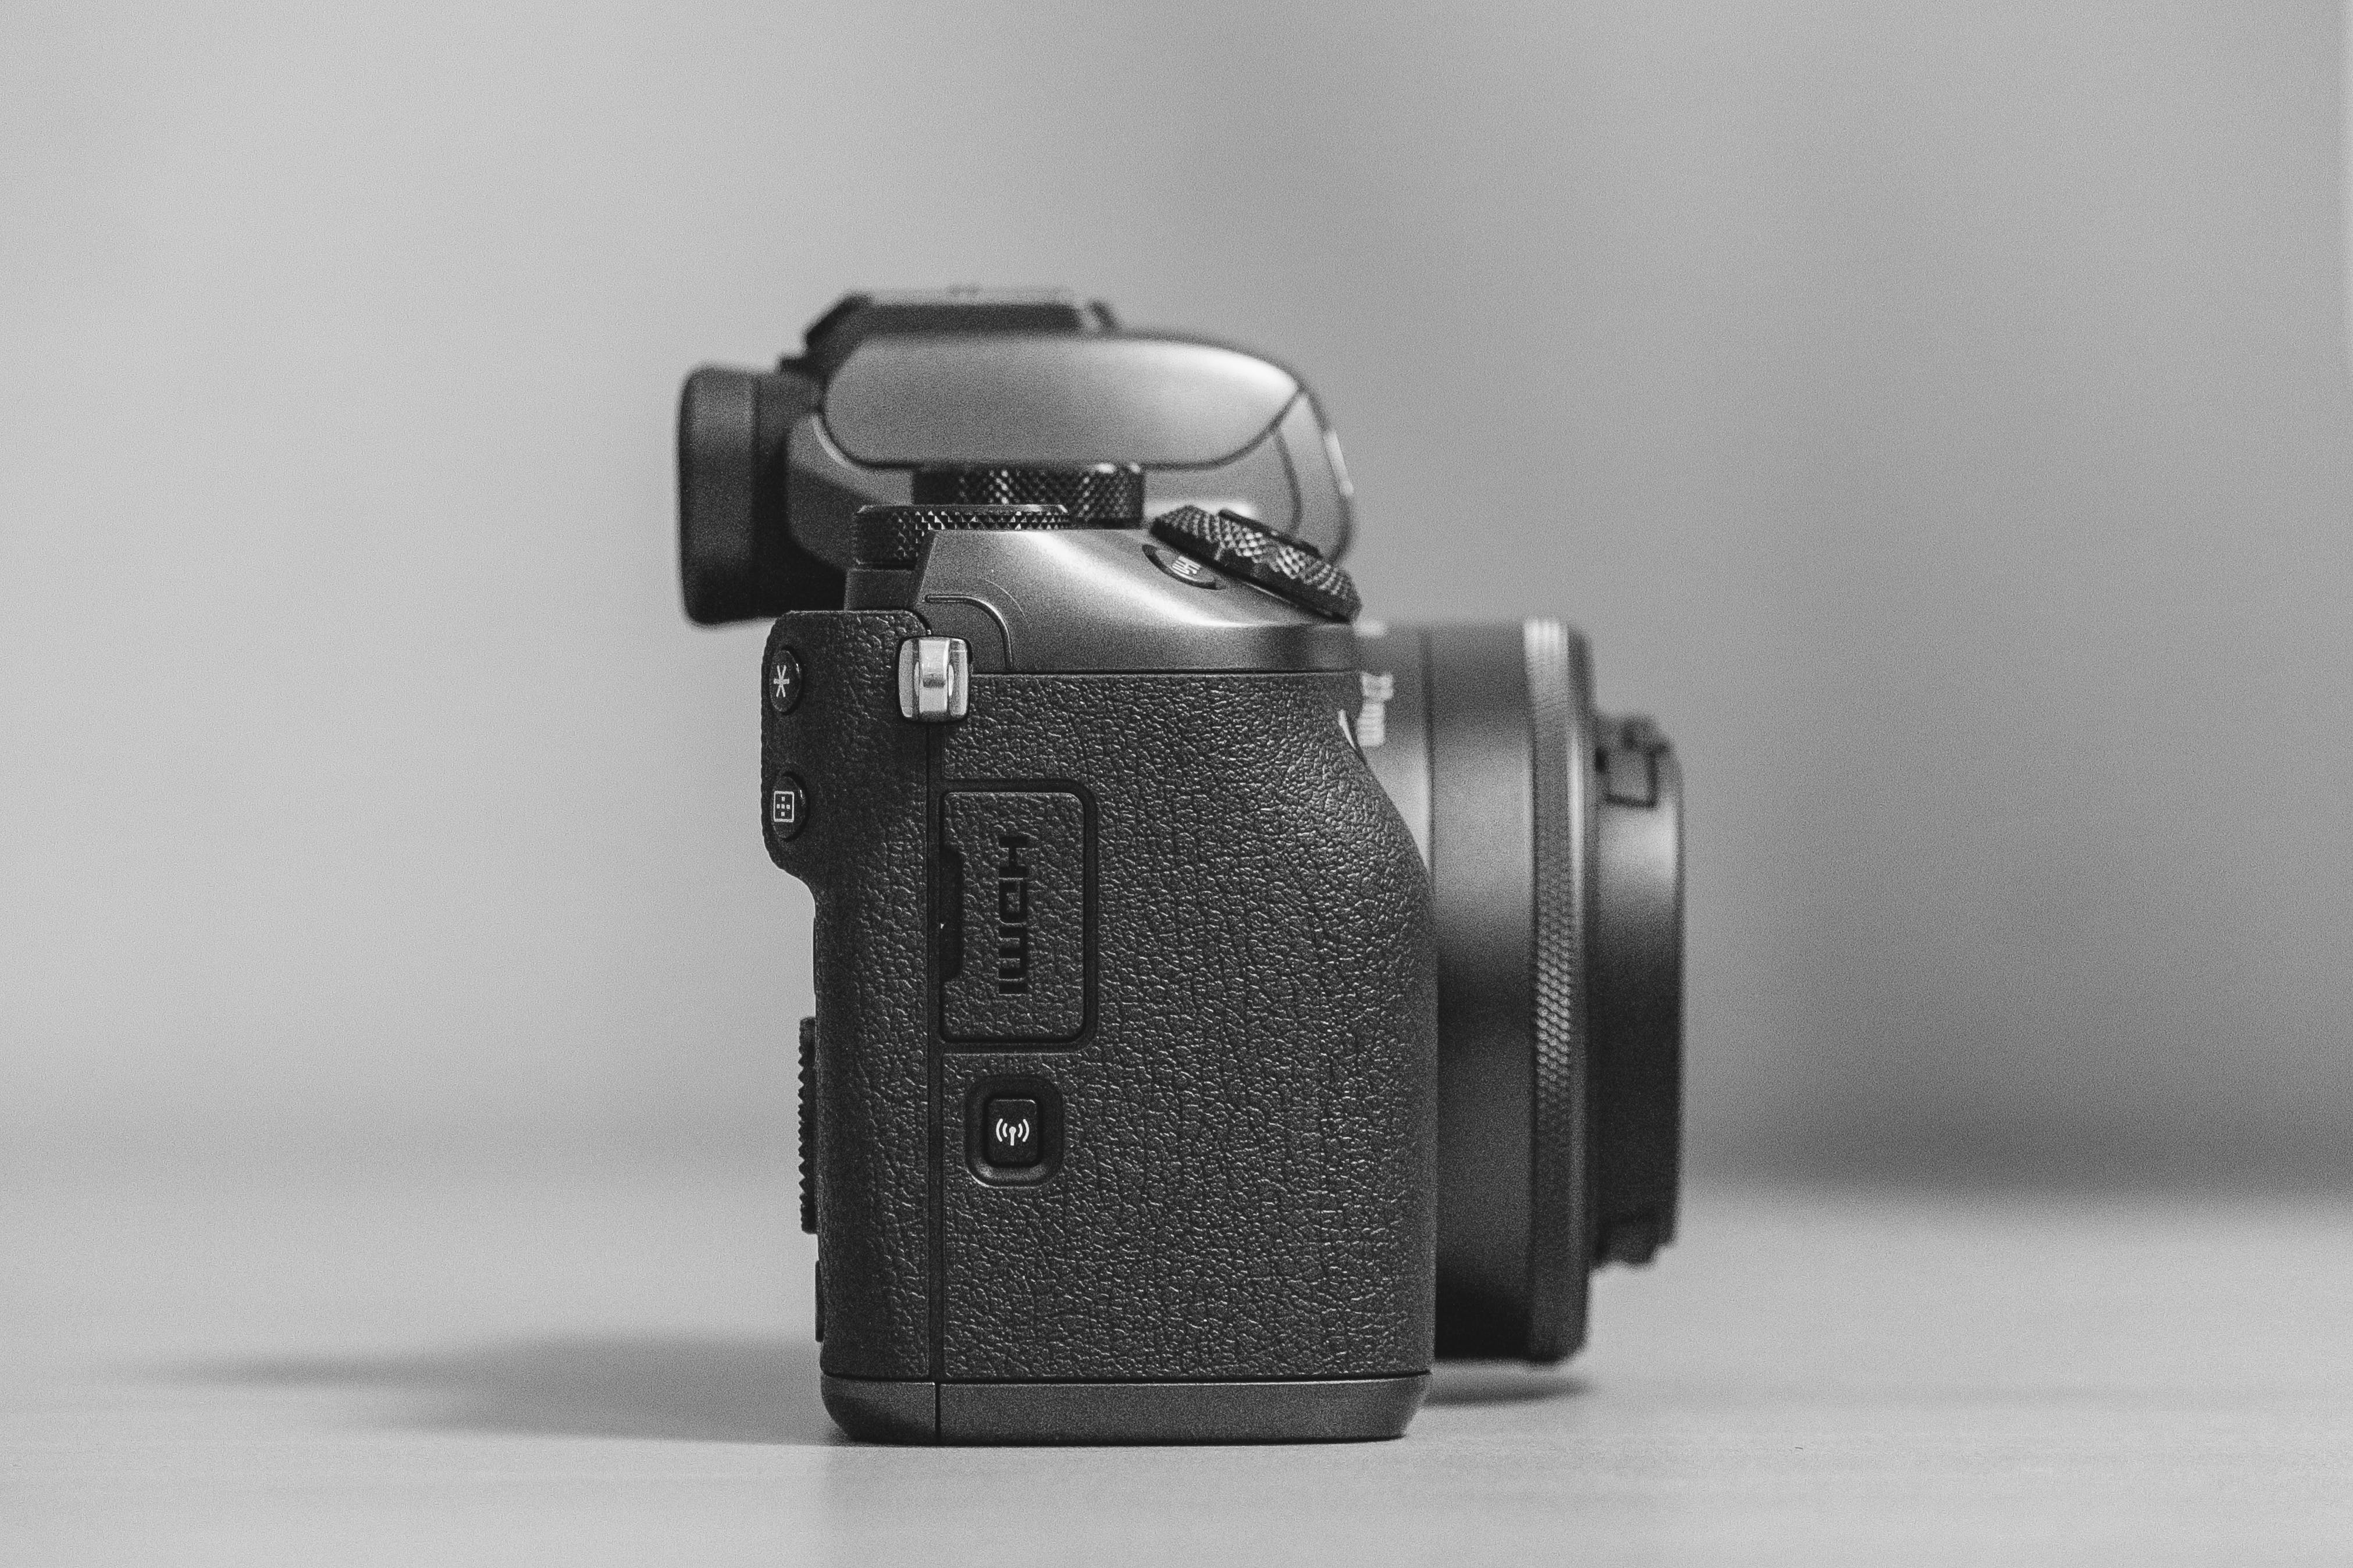 Side-view Close-up Photo of Dslr Camera